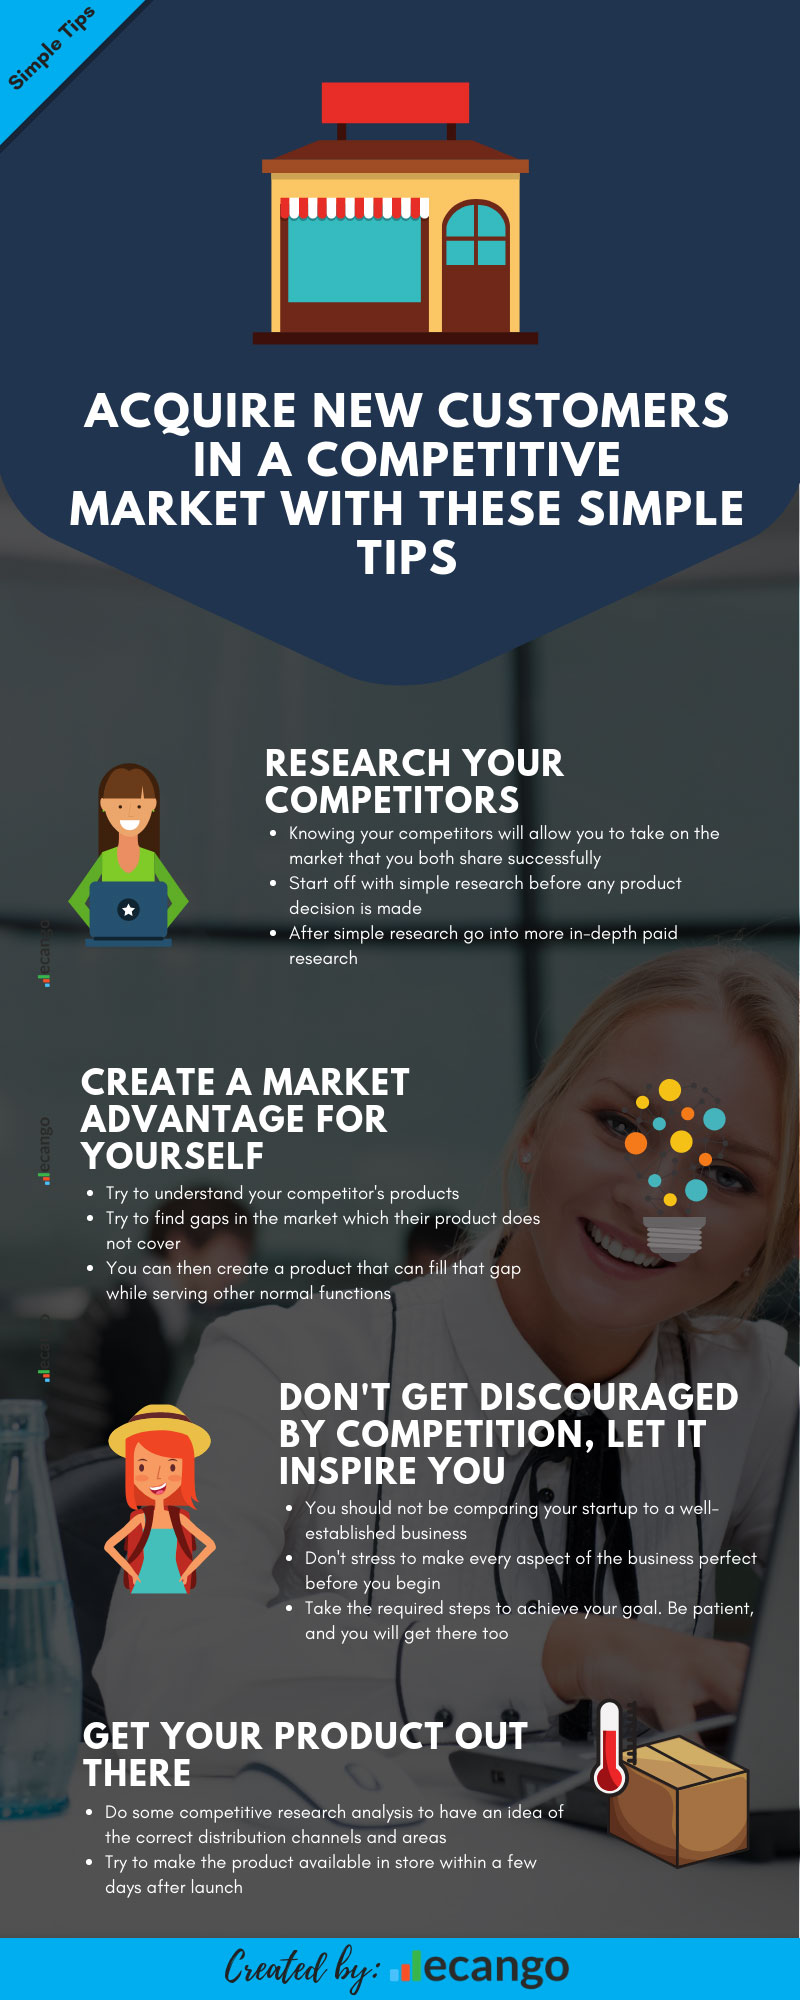 Acquire new customers with these simple tips